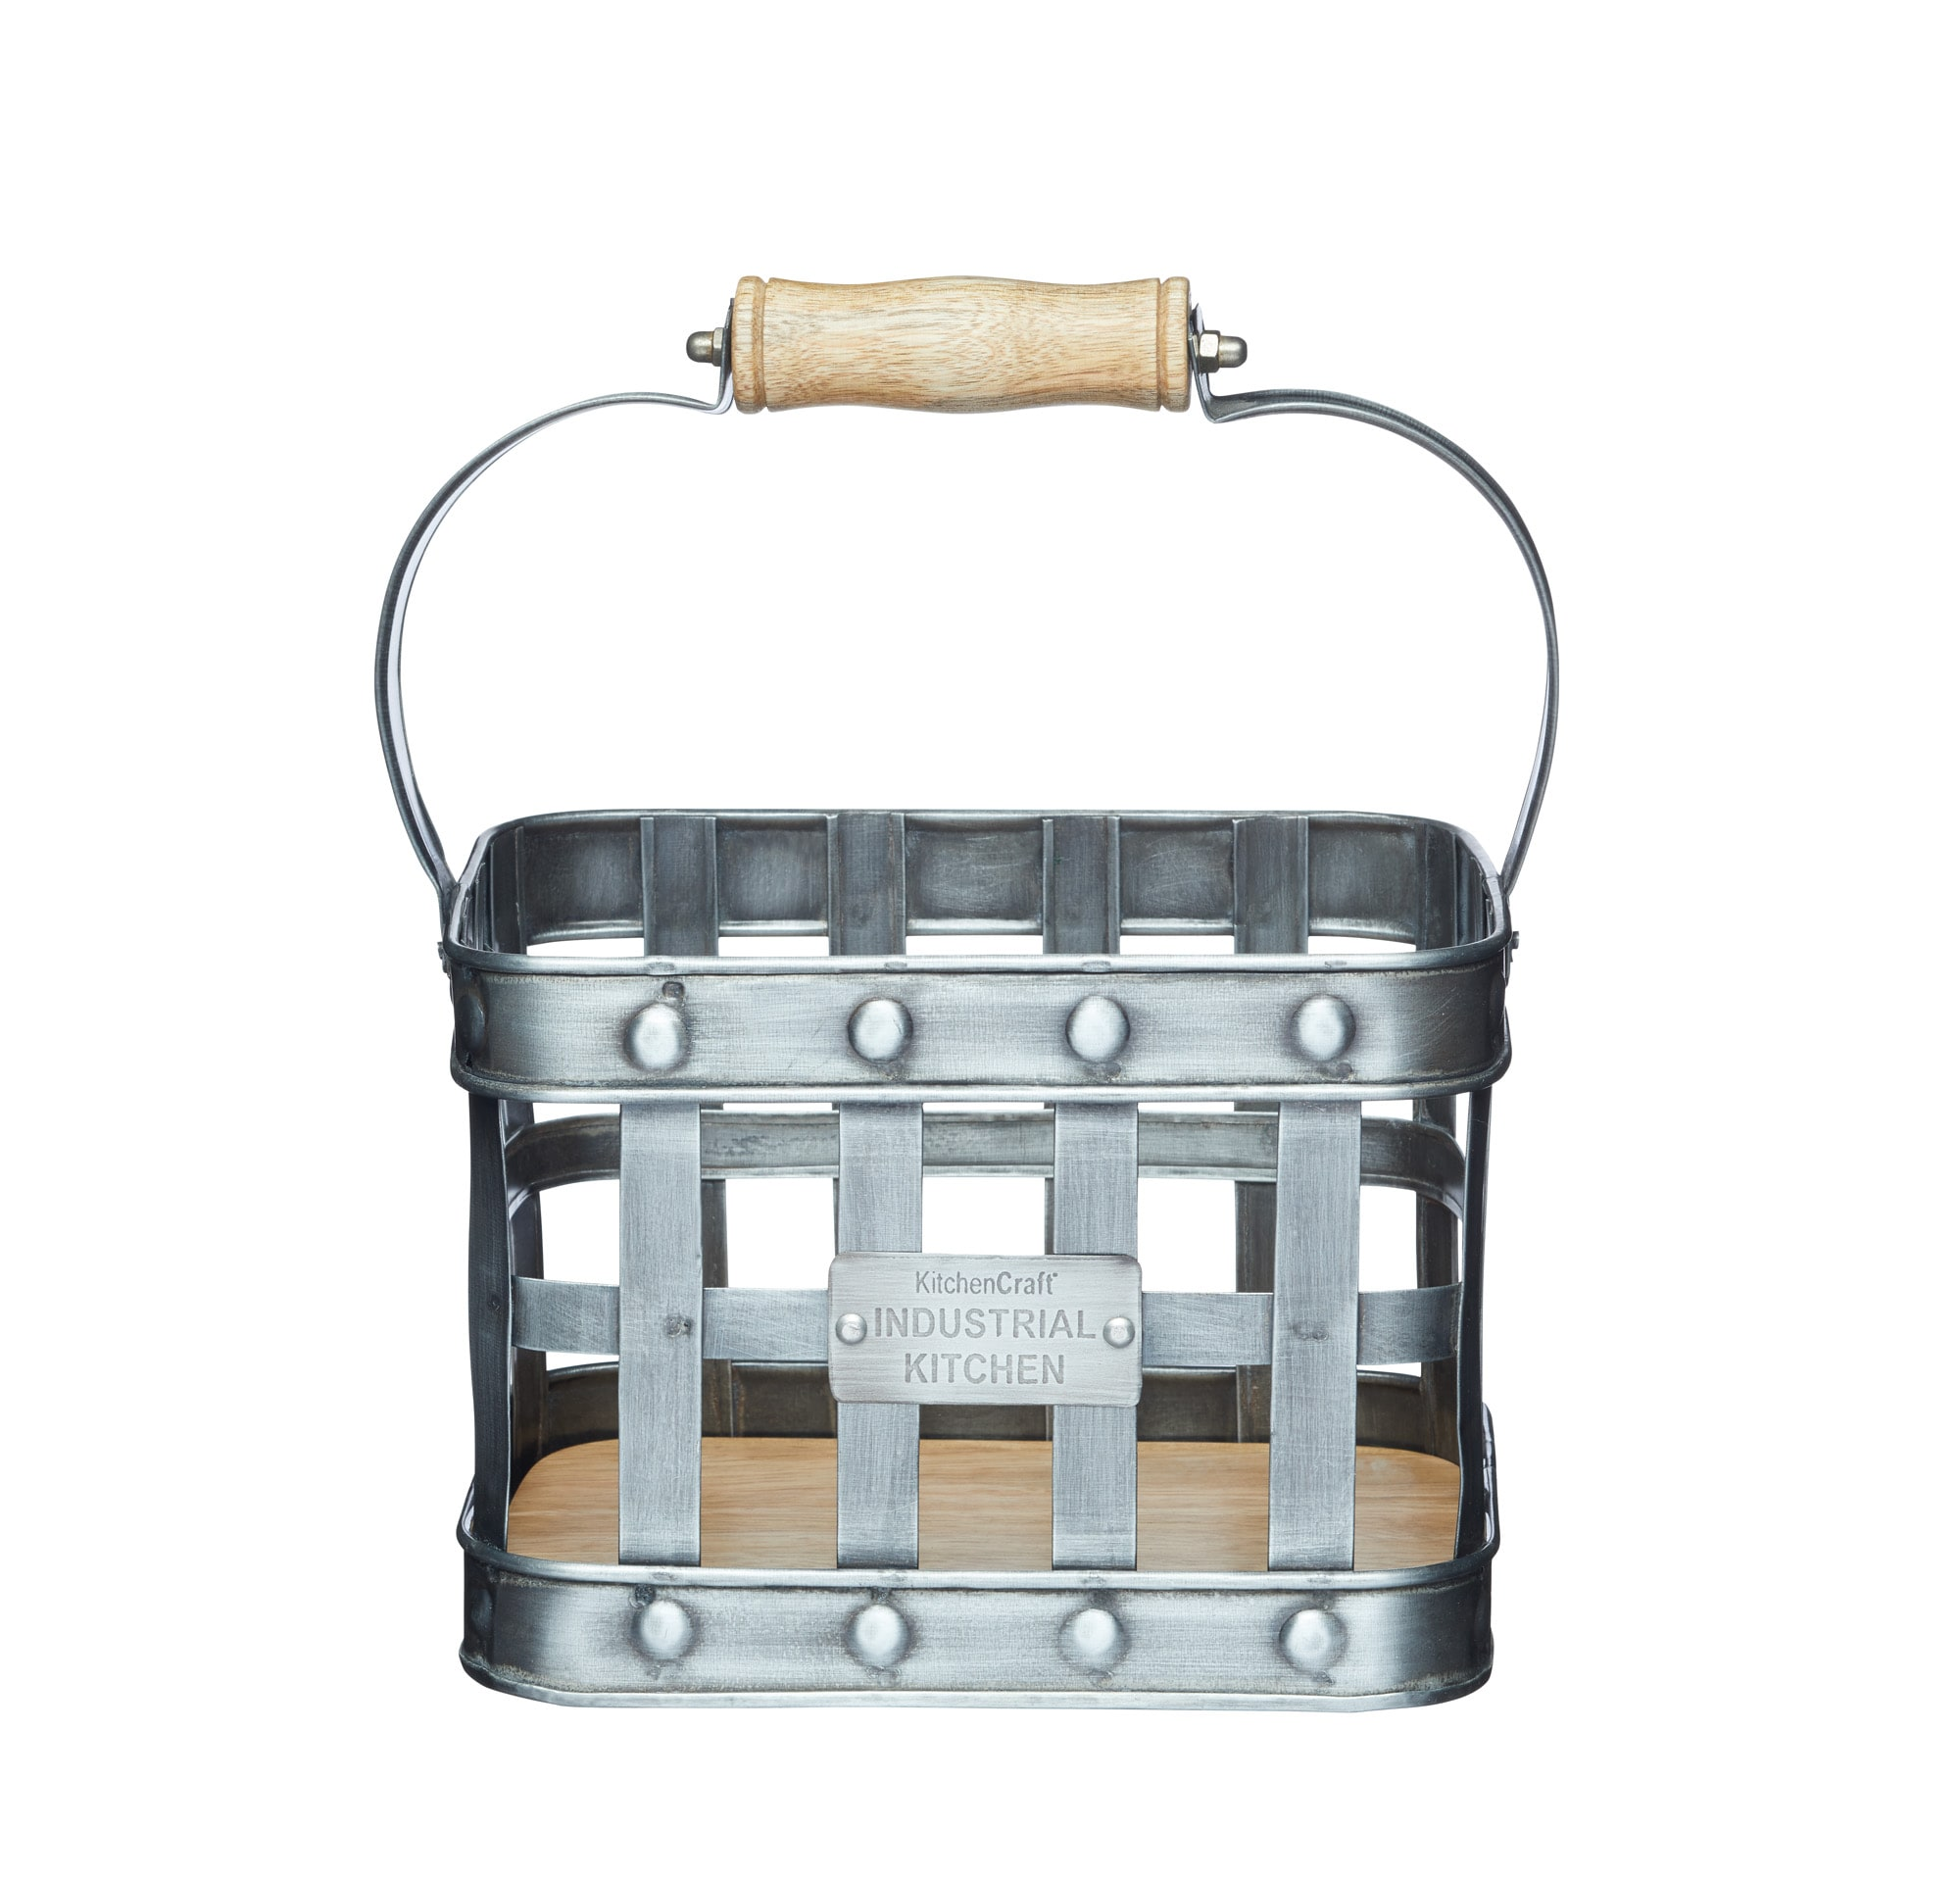 Industrial Kitchen Metal and Mango Wood Condiment Caddy | Condiments ...